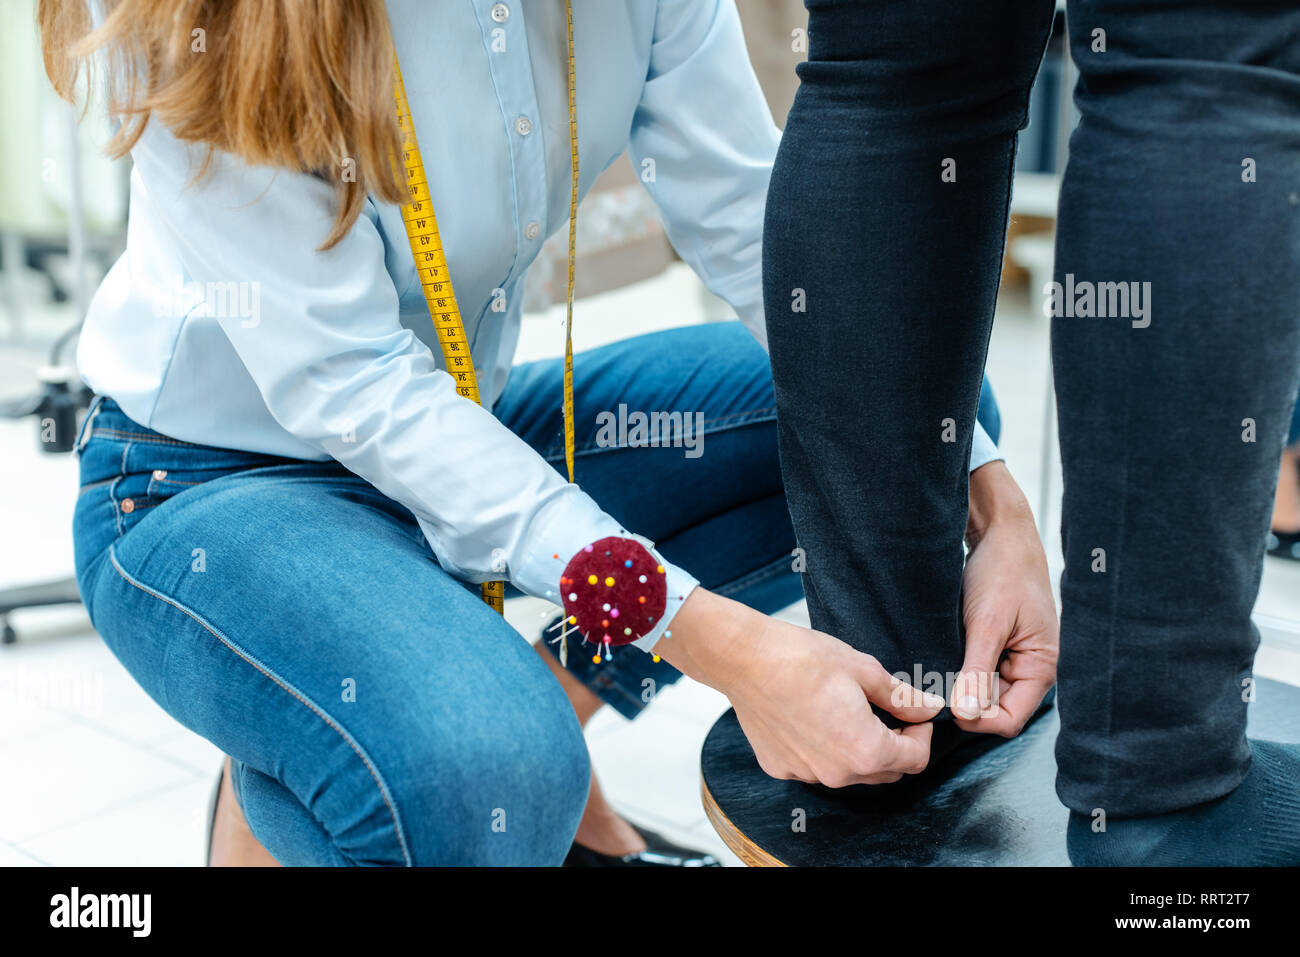 Alterations tailor measuring trousers on a customer - Stock Image